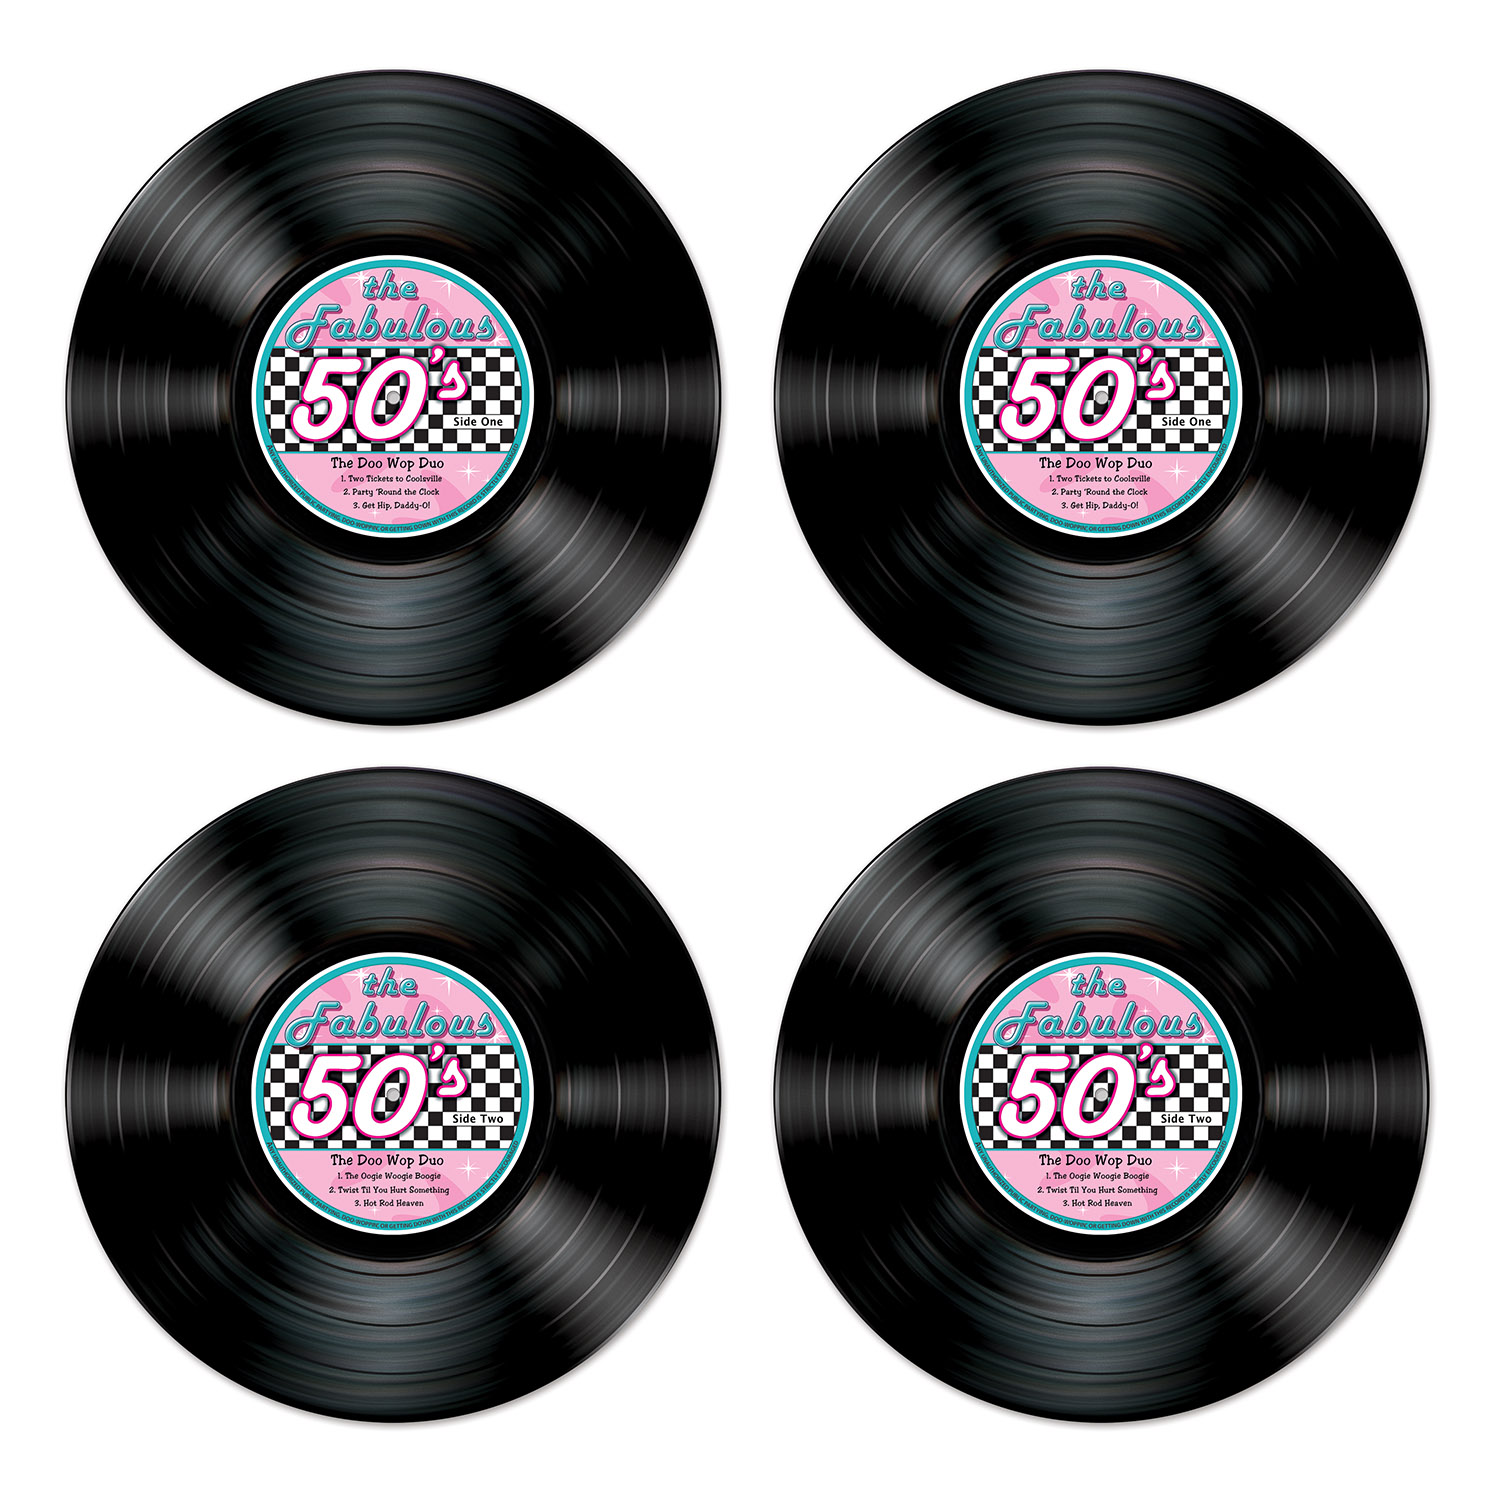 Record Cutouts (Pack of 48) Records, 50s records, music, records cutouts, musical